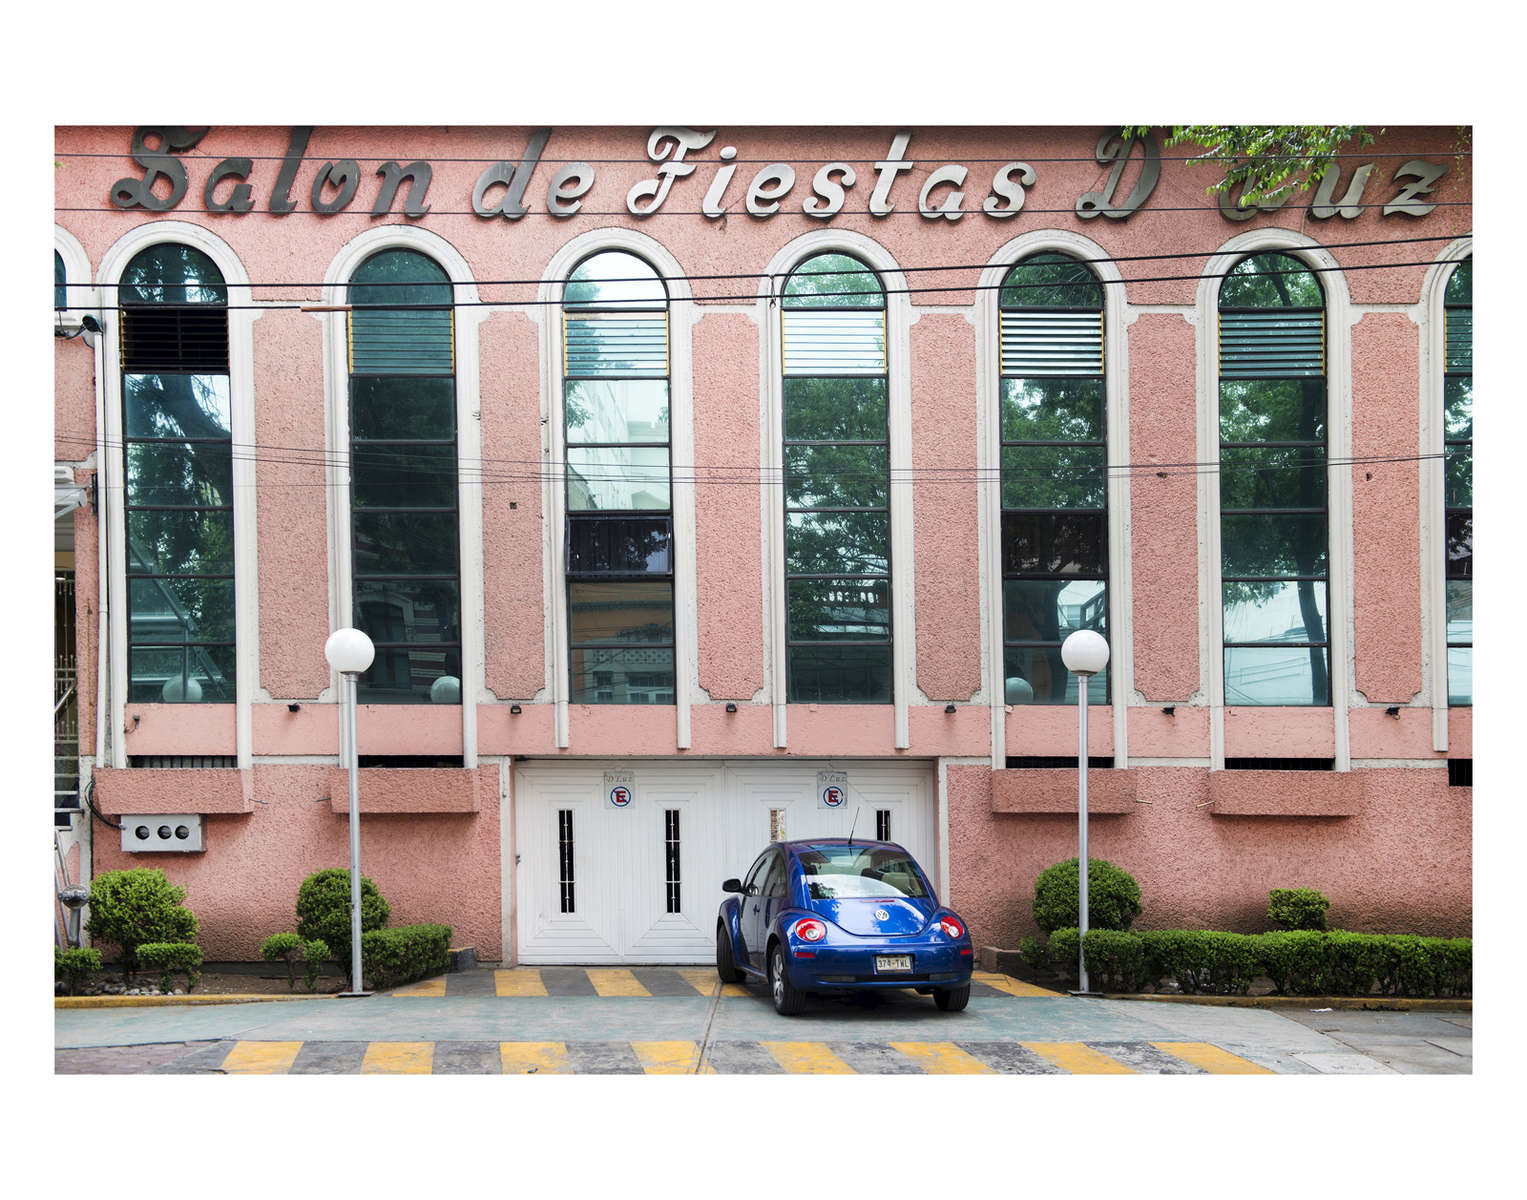 A beetle parked outside a Salon de Fiestas in the Roma neighborhood of Mexico City.